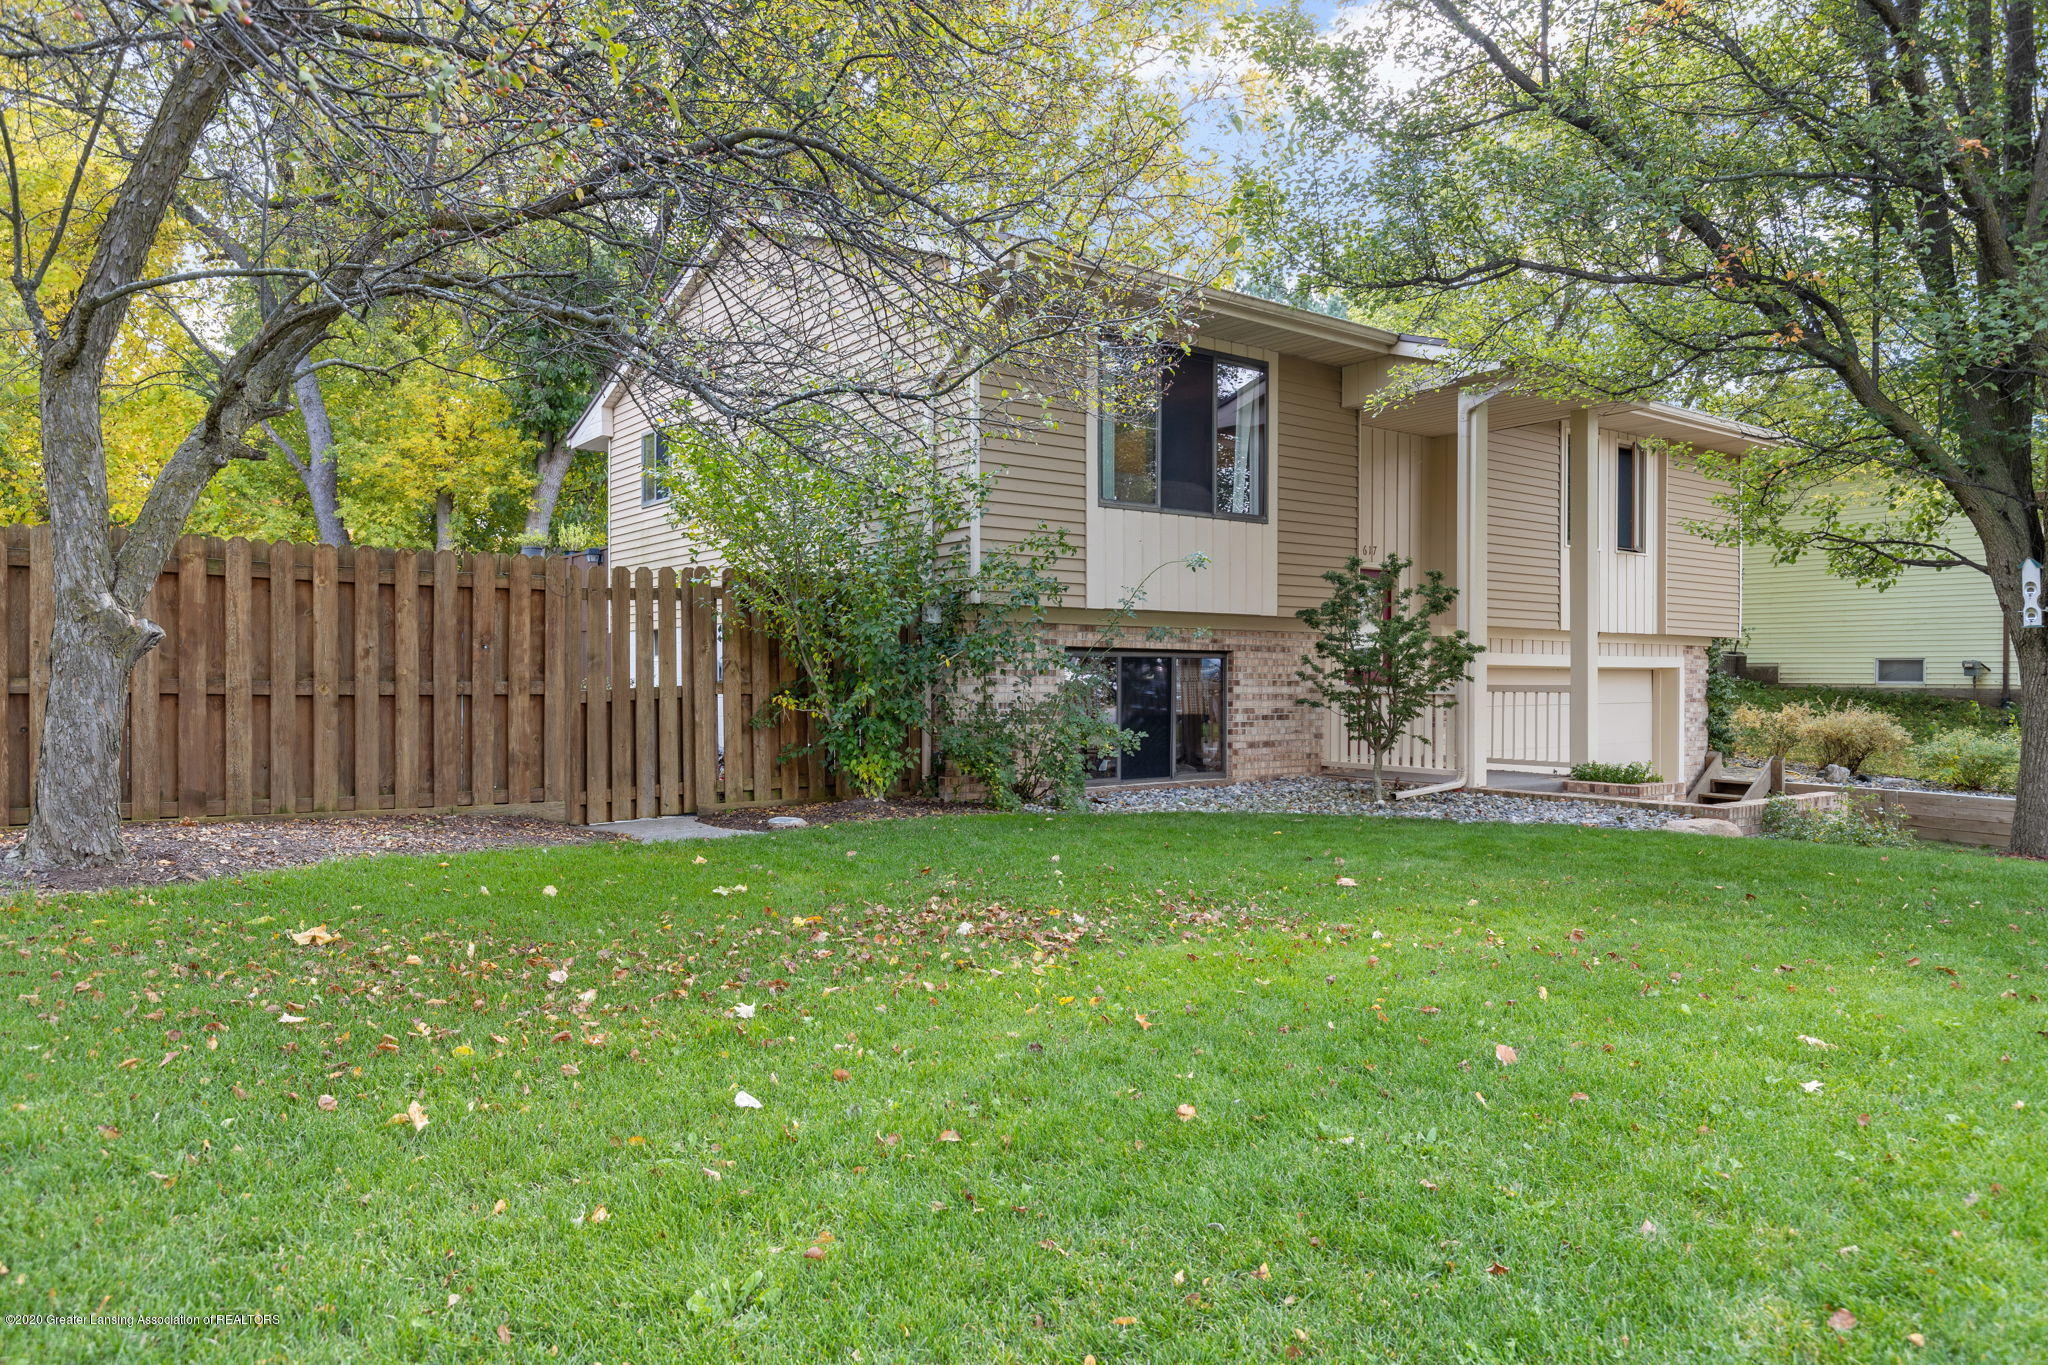 617 Green St - 9-web-or-mls-1P6A9412 - 5